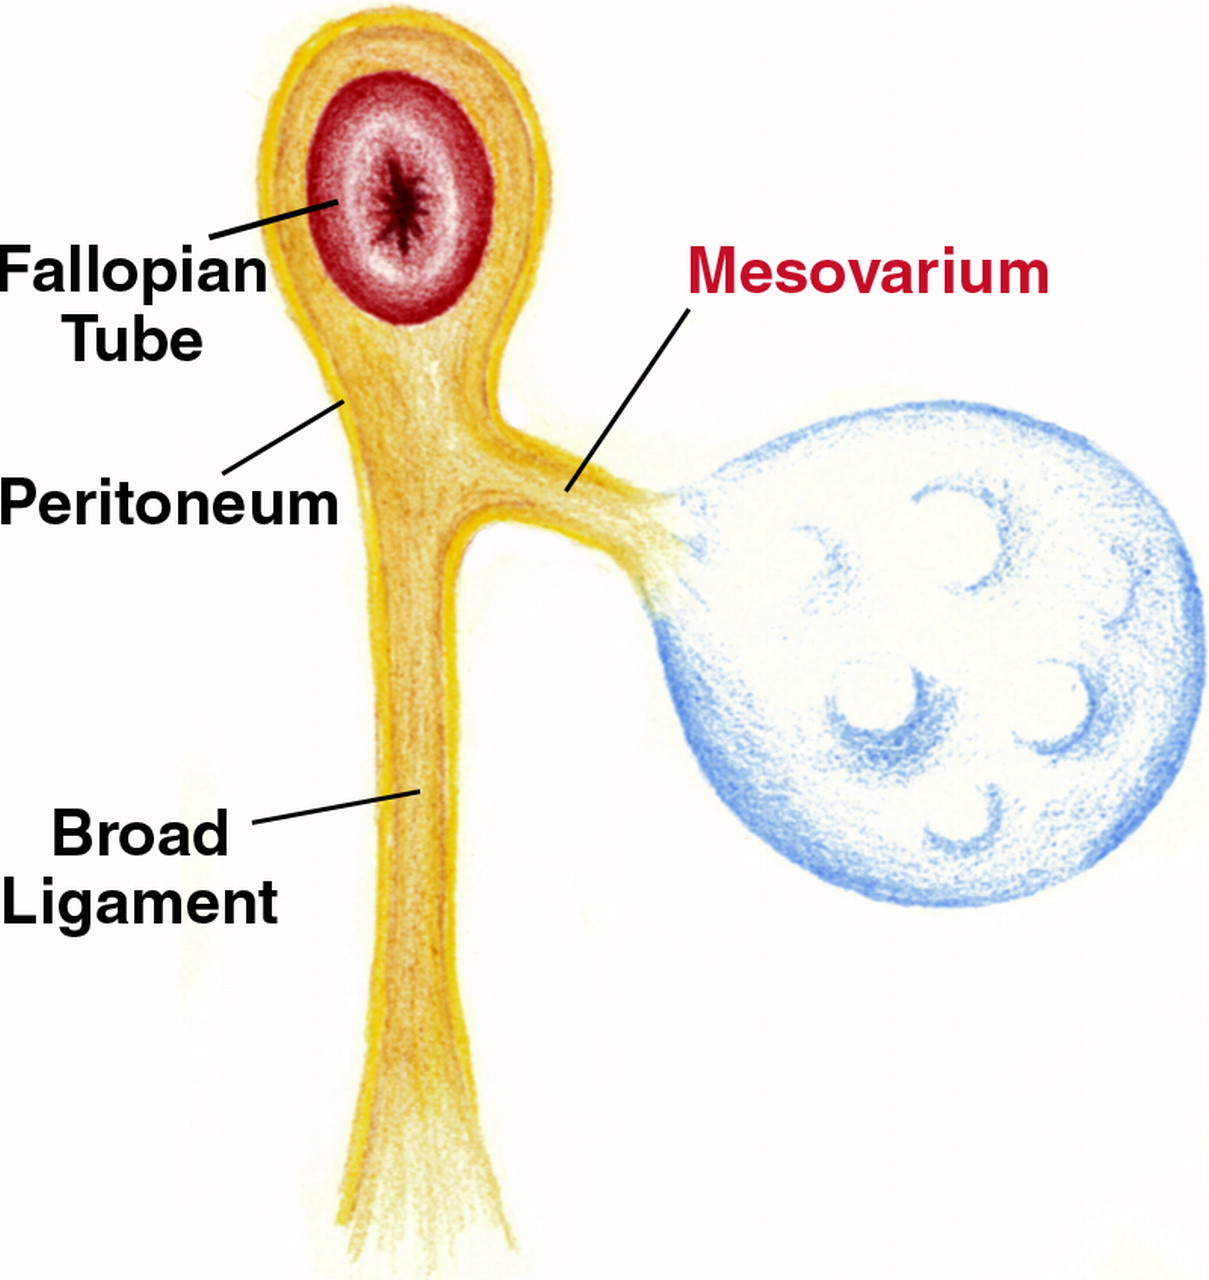 mesovarium - definition, function and pictures, Human Body